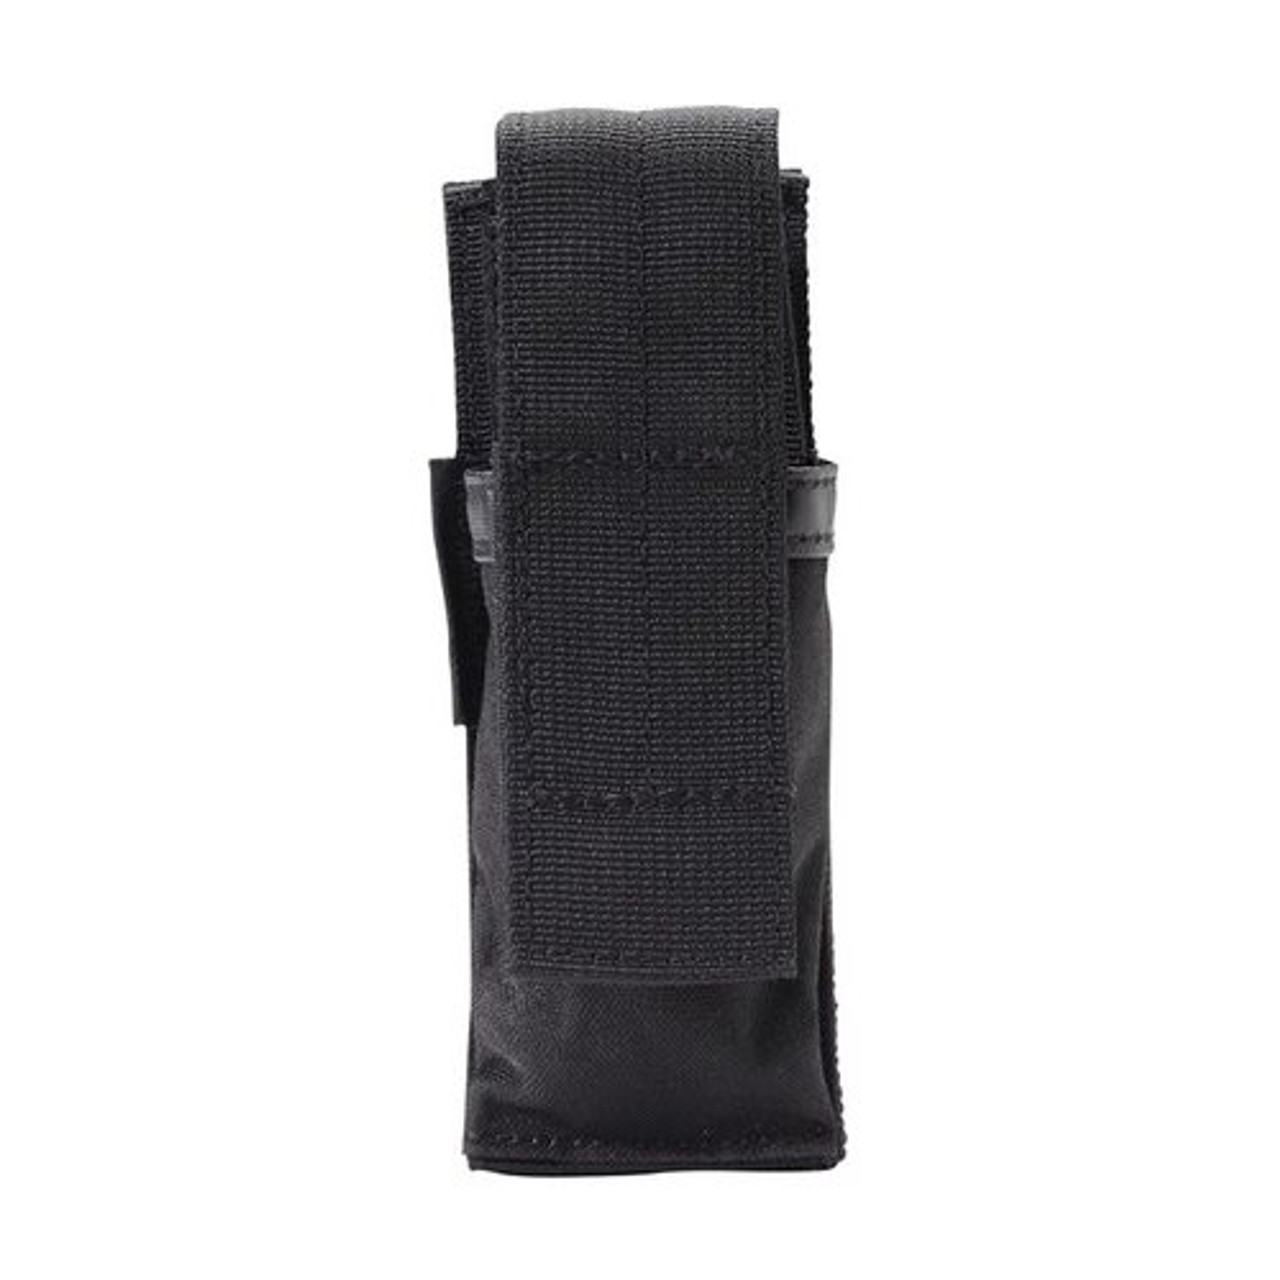 Triple Pistol Mag Pouch Durable Nylon with Hook /& Loop Closure Gray